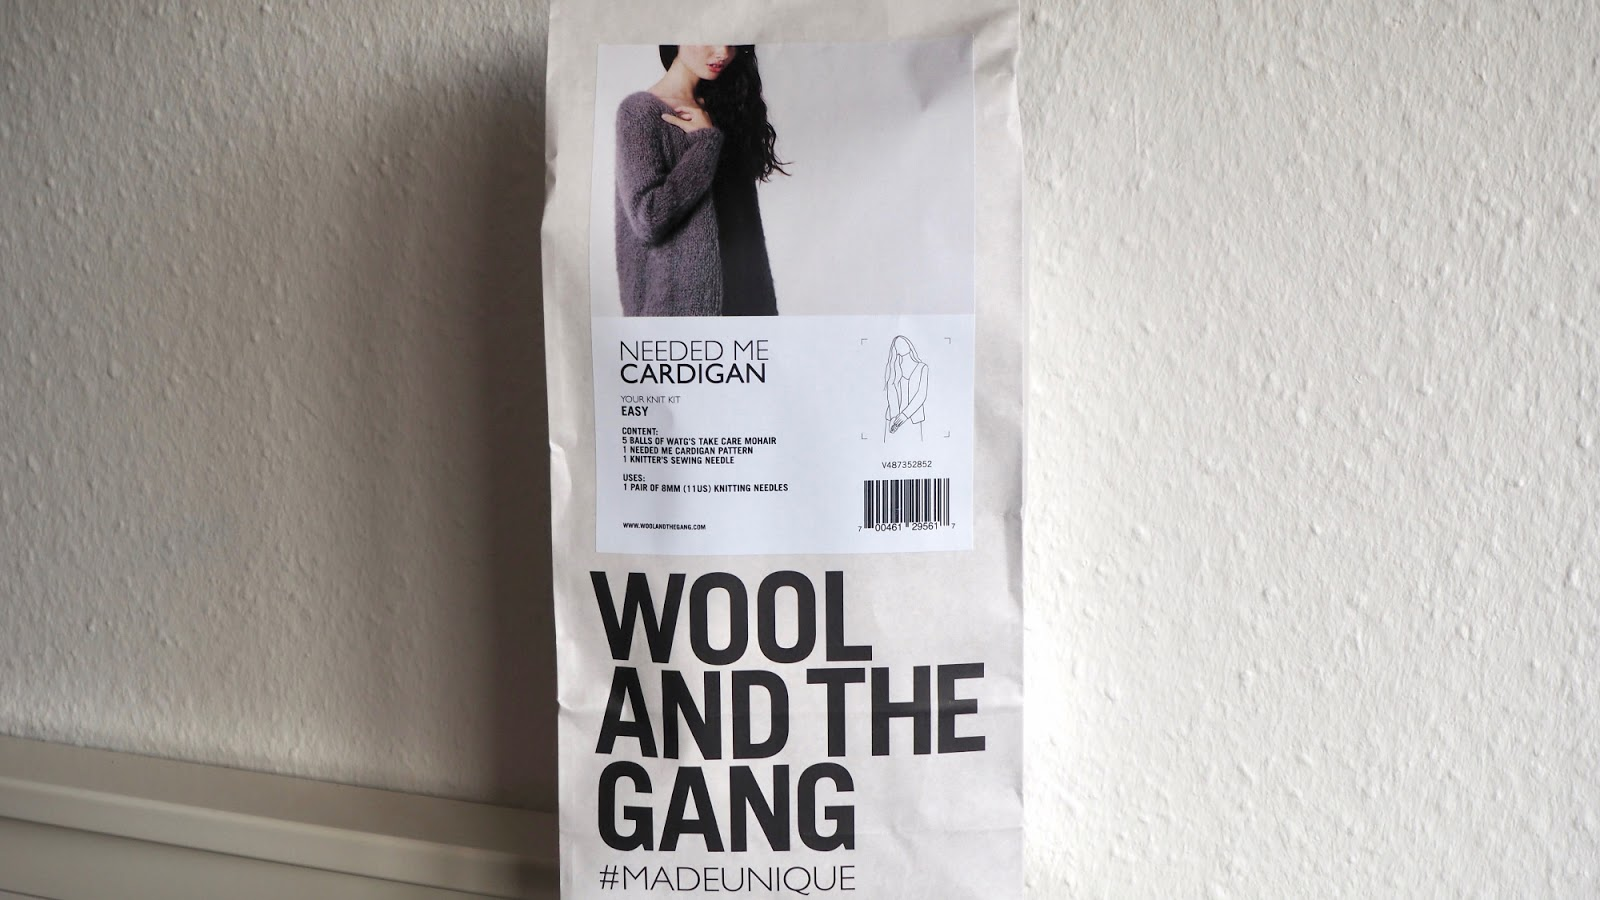 Wool and the Gang Needed Me Cardigan Strickset verpackt im Beutel